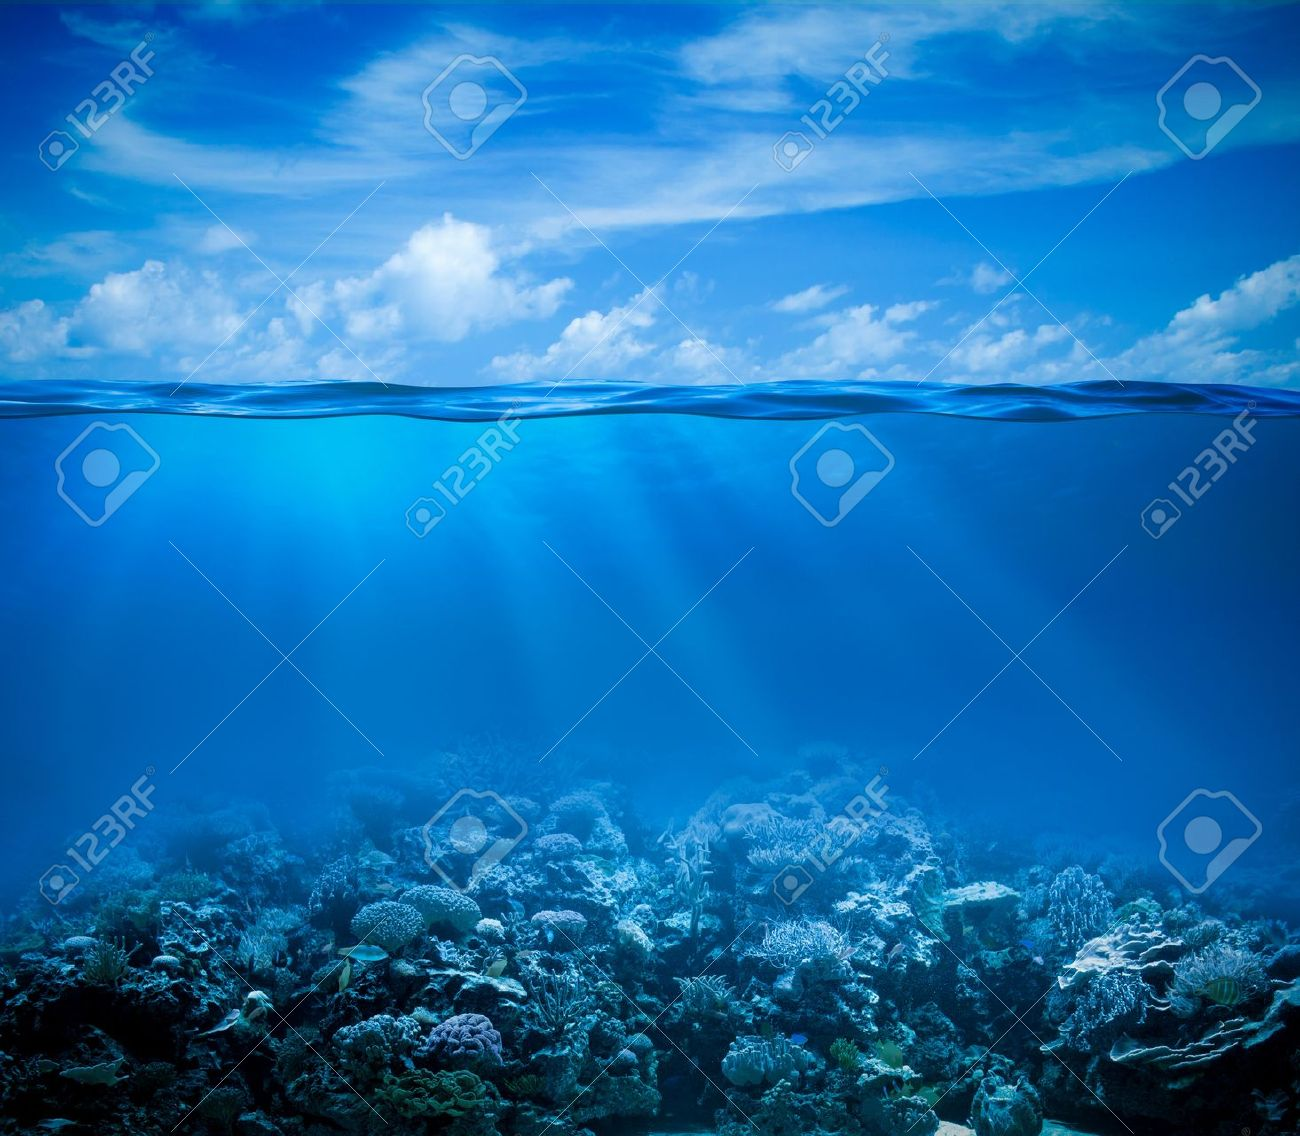 Underwater coral reef seabed view with horizon and water surface split by waterline - 16248932